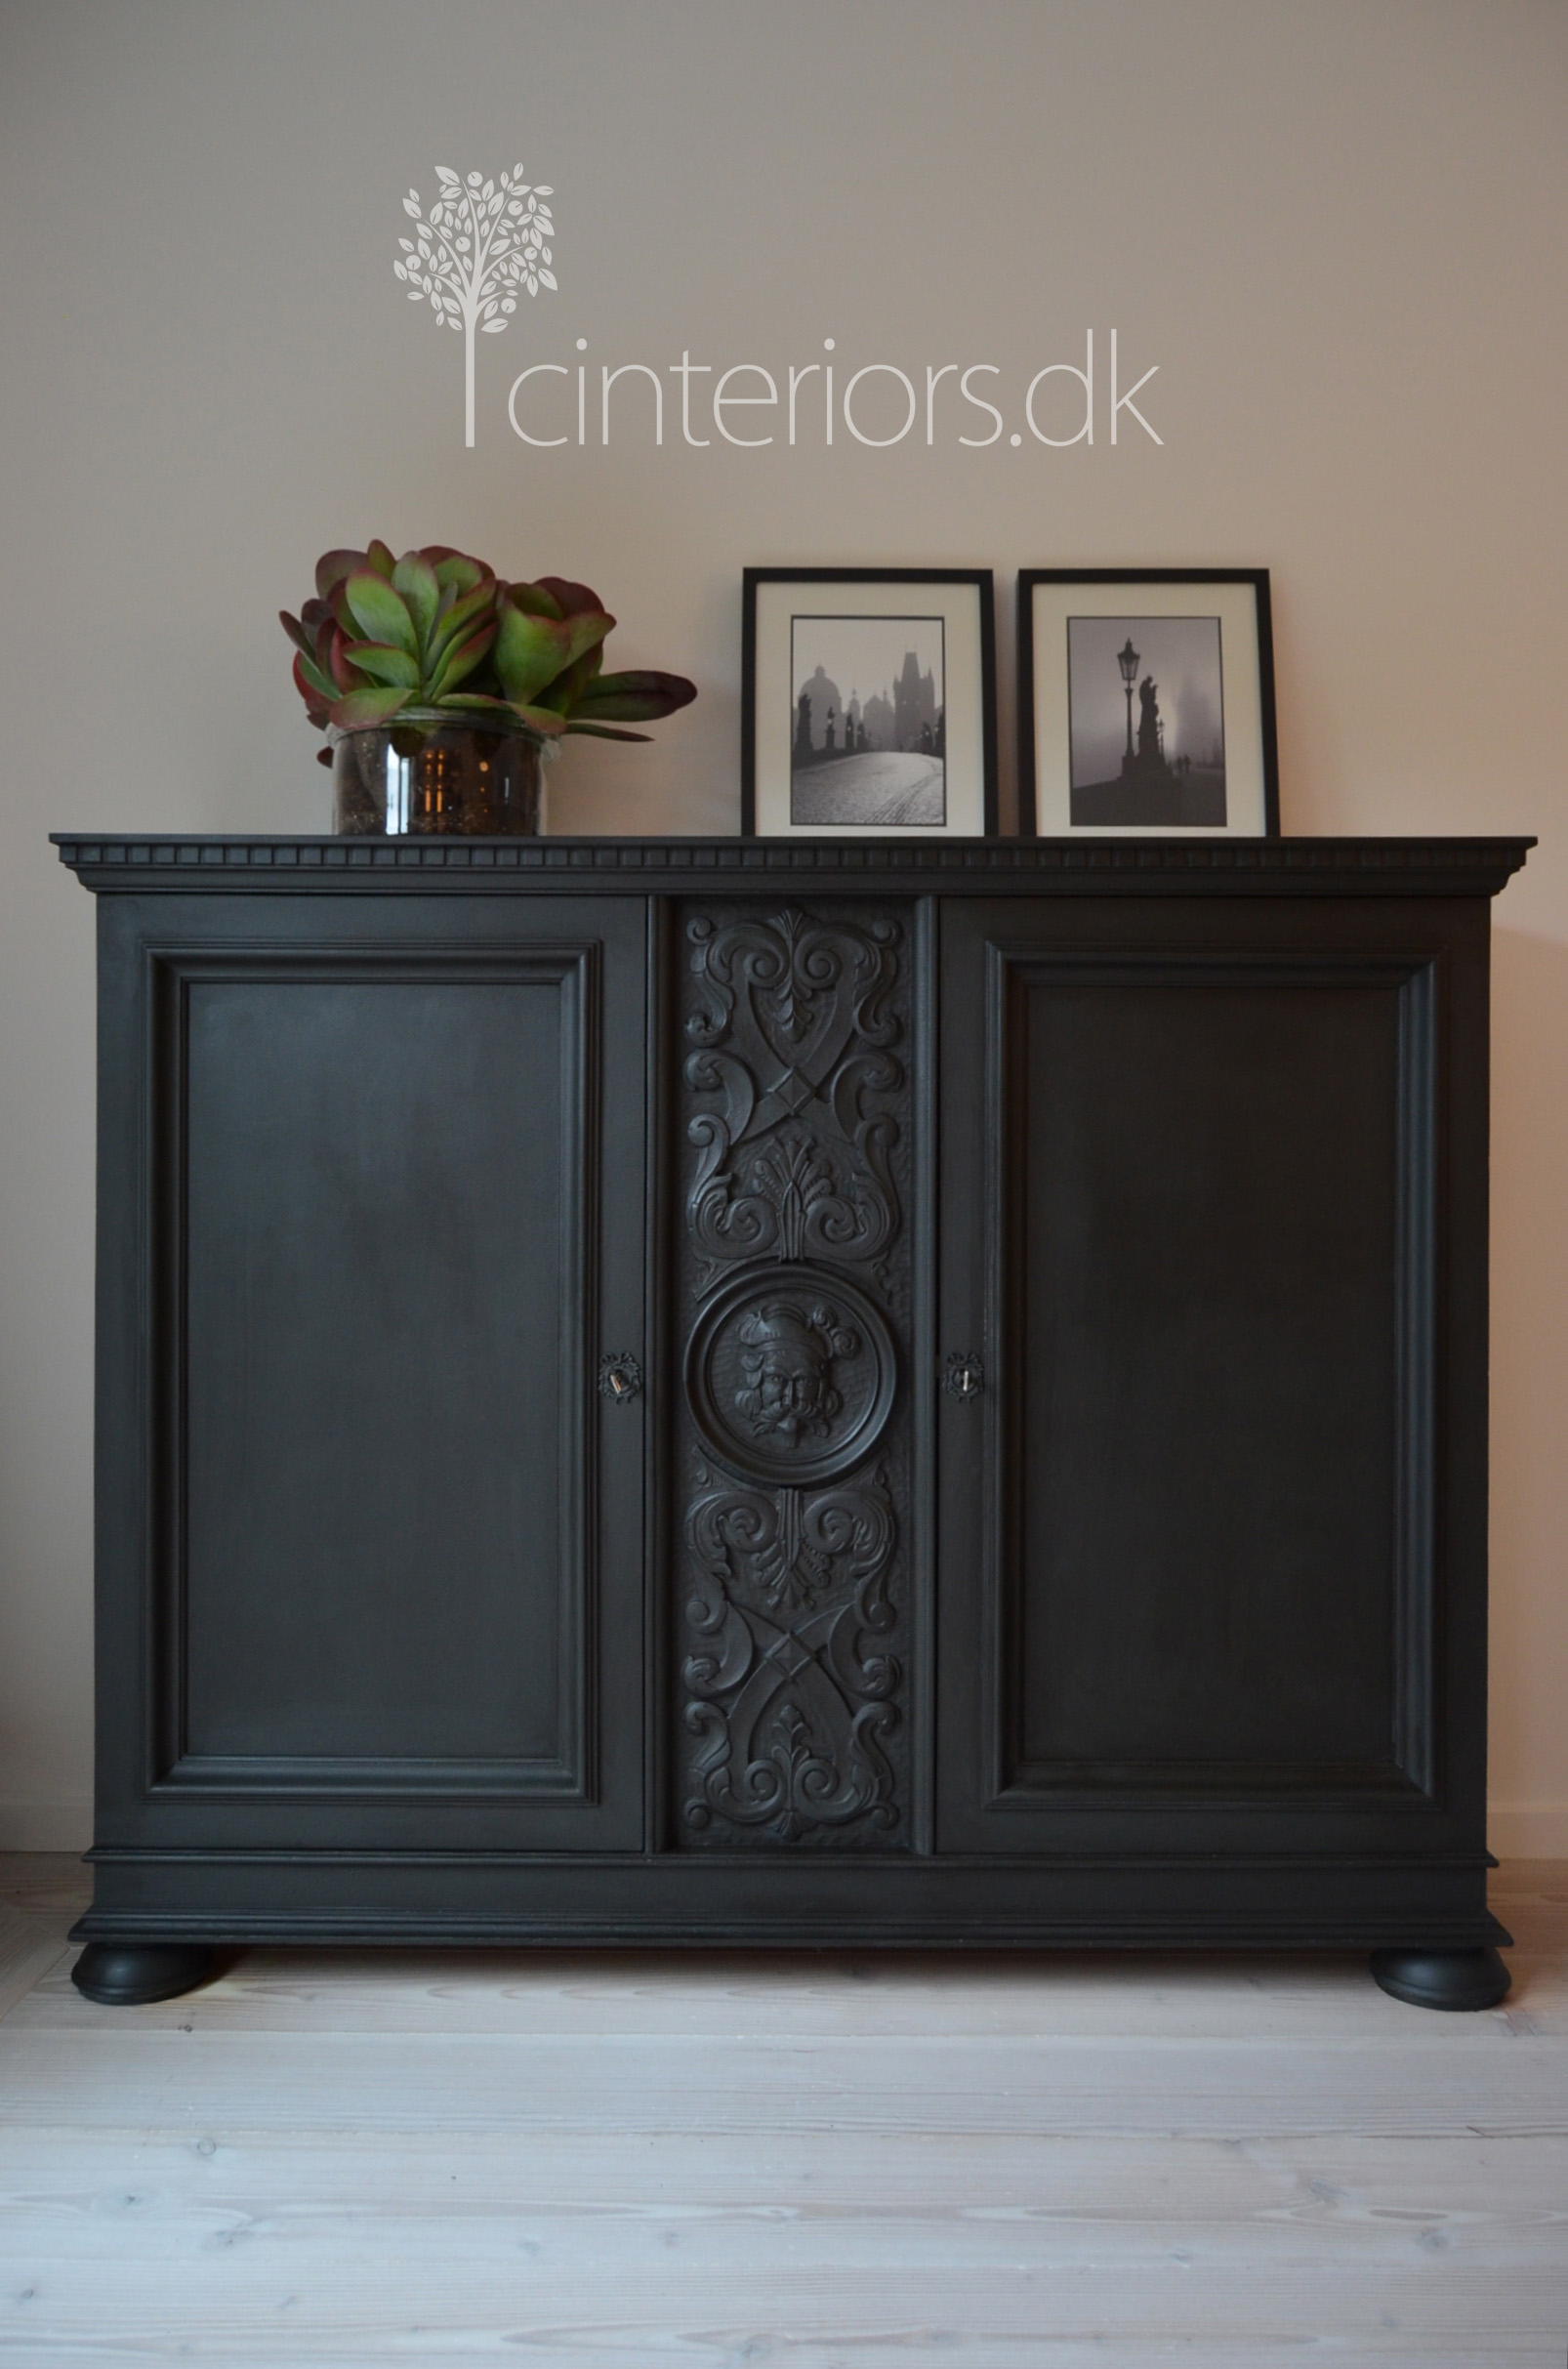 Vanity Bedroom Furniture Chalk Paint Dark Vs Bright C I R U E L O I N T E R I O R S